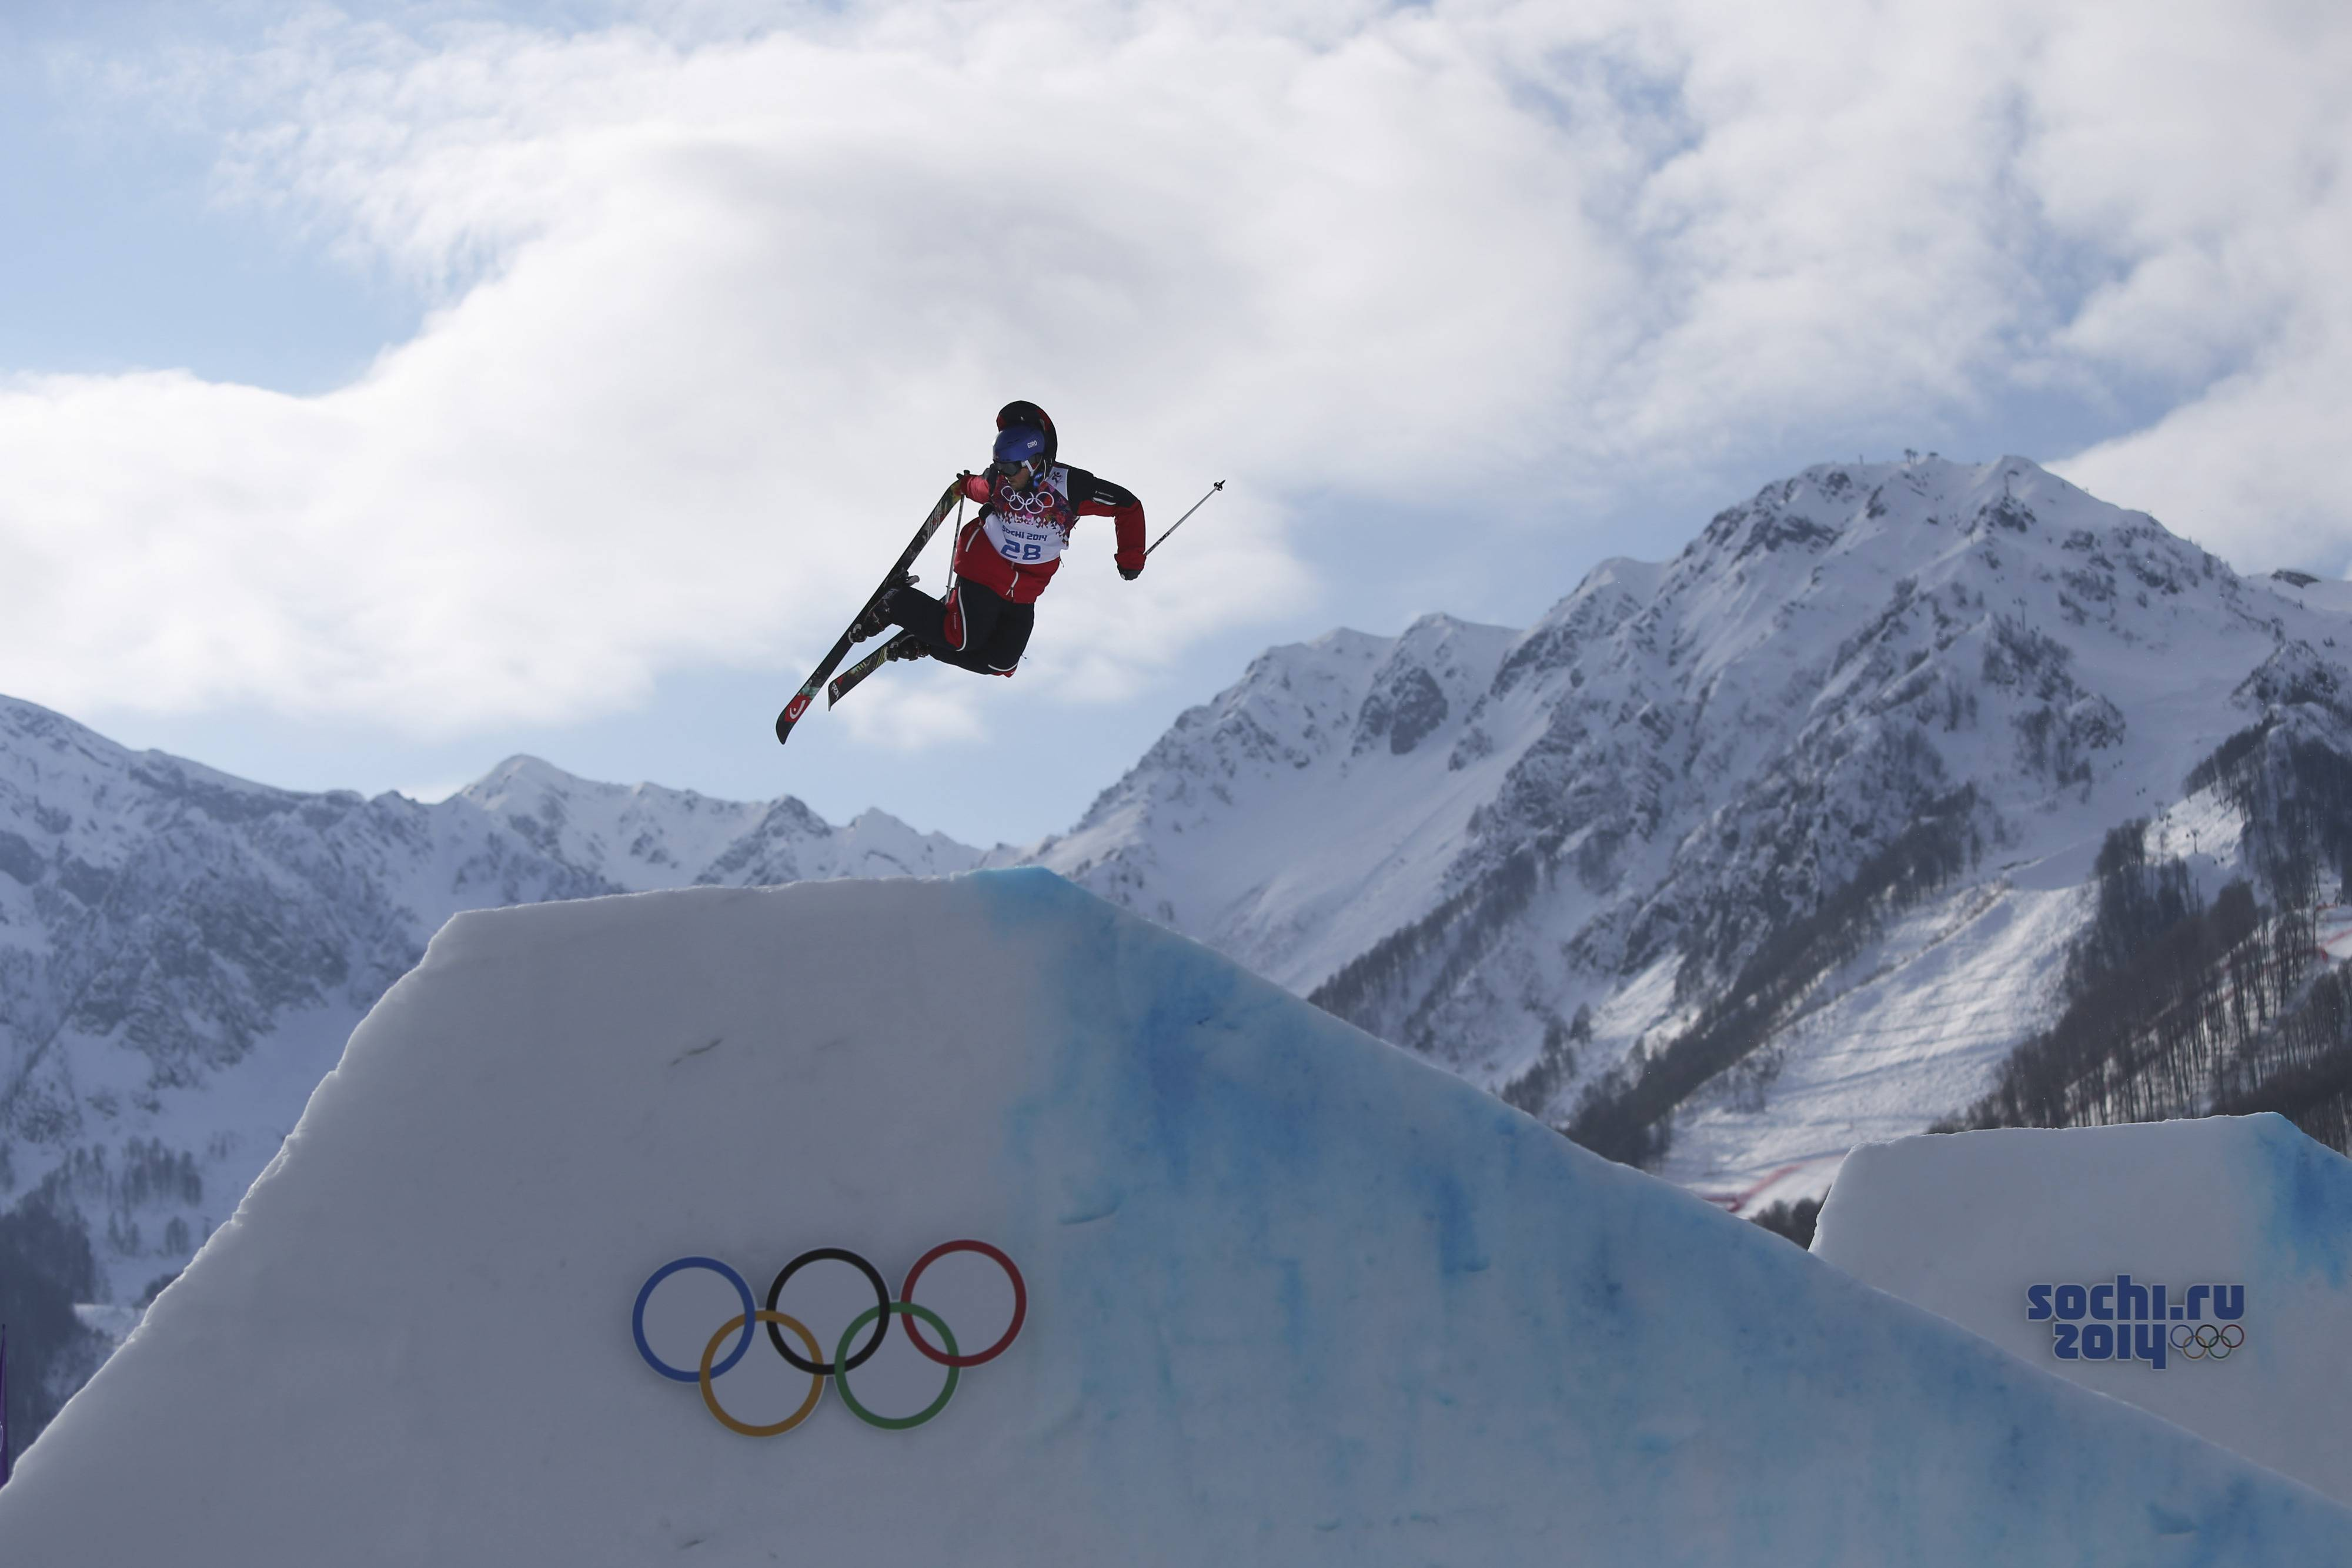 Norway's Per Kristian Hunder takes a jump during freestyle skiing slopestyle training at the 2014 Winter Olympics, Monday, Feb. 10, 2014, in Krasnaya Polyana, Russia.